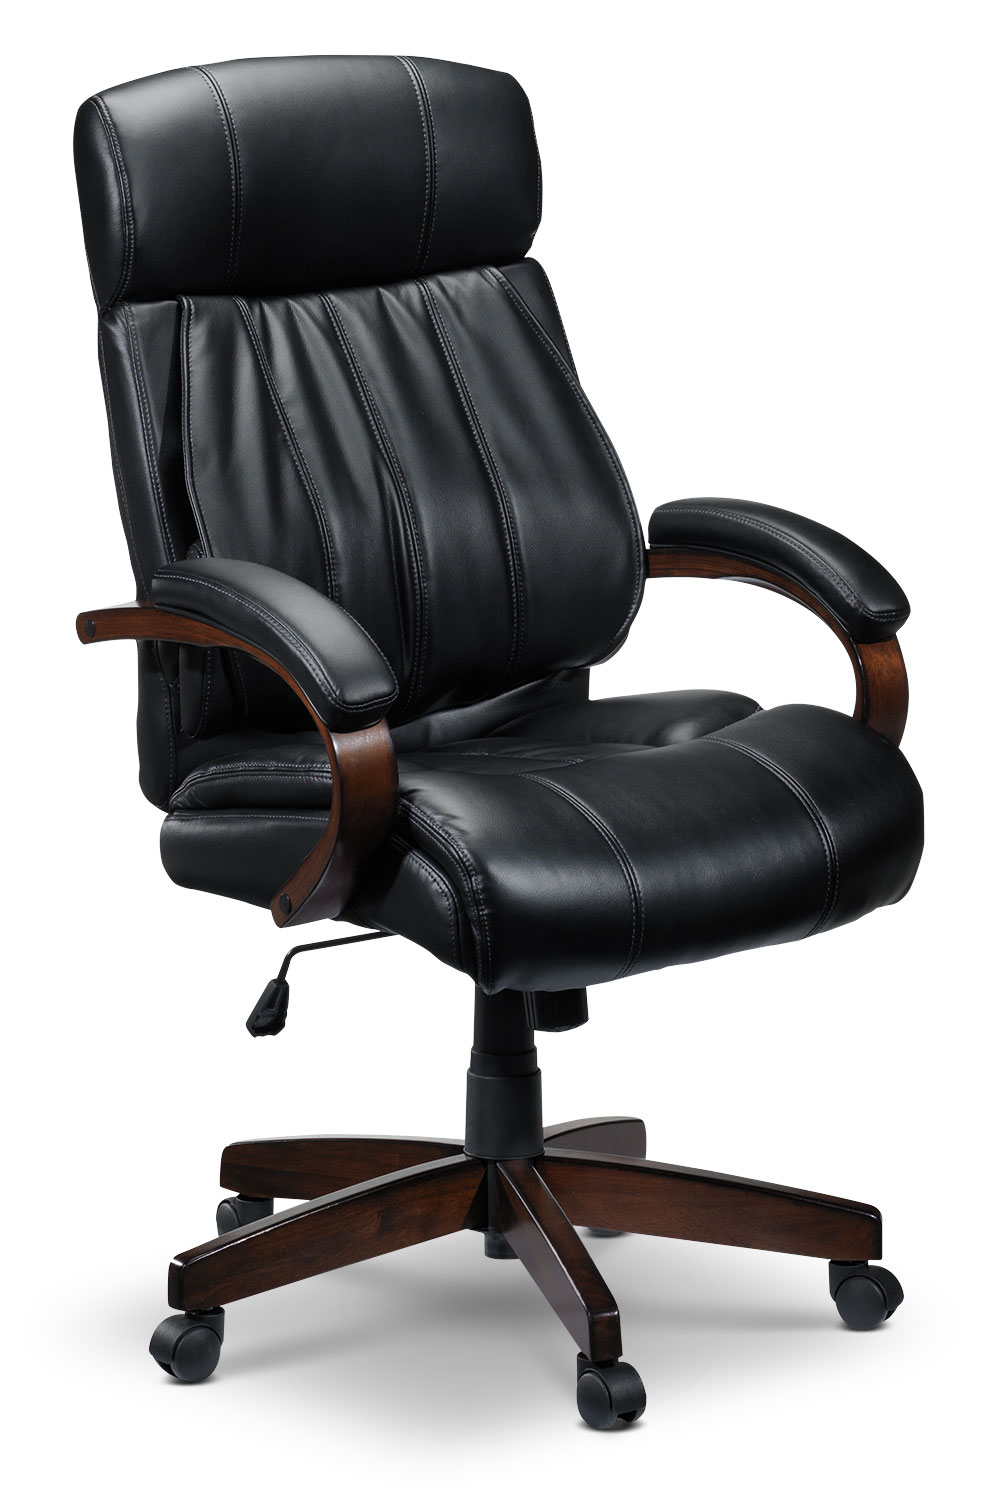 Home Office Furniture - Grant Executive Office Chair